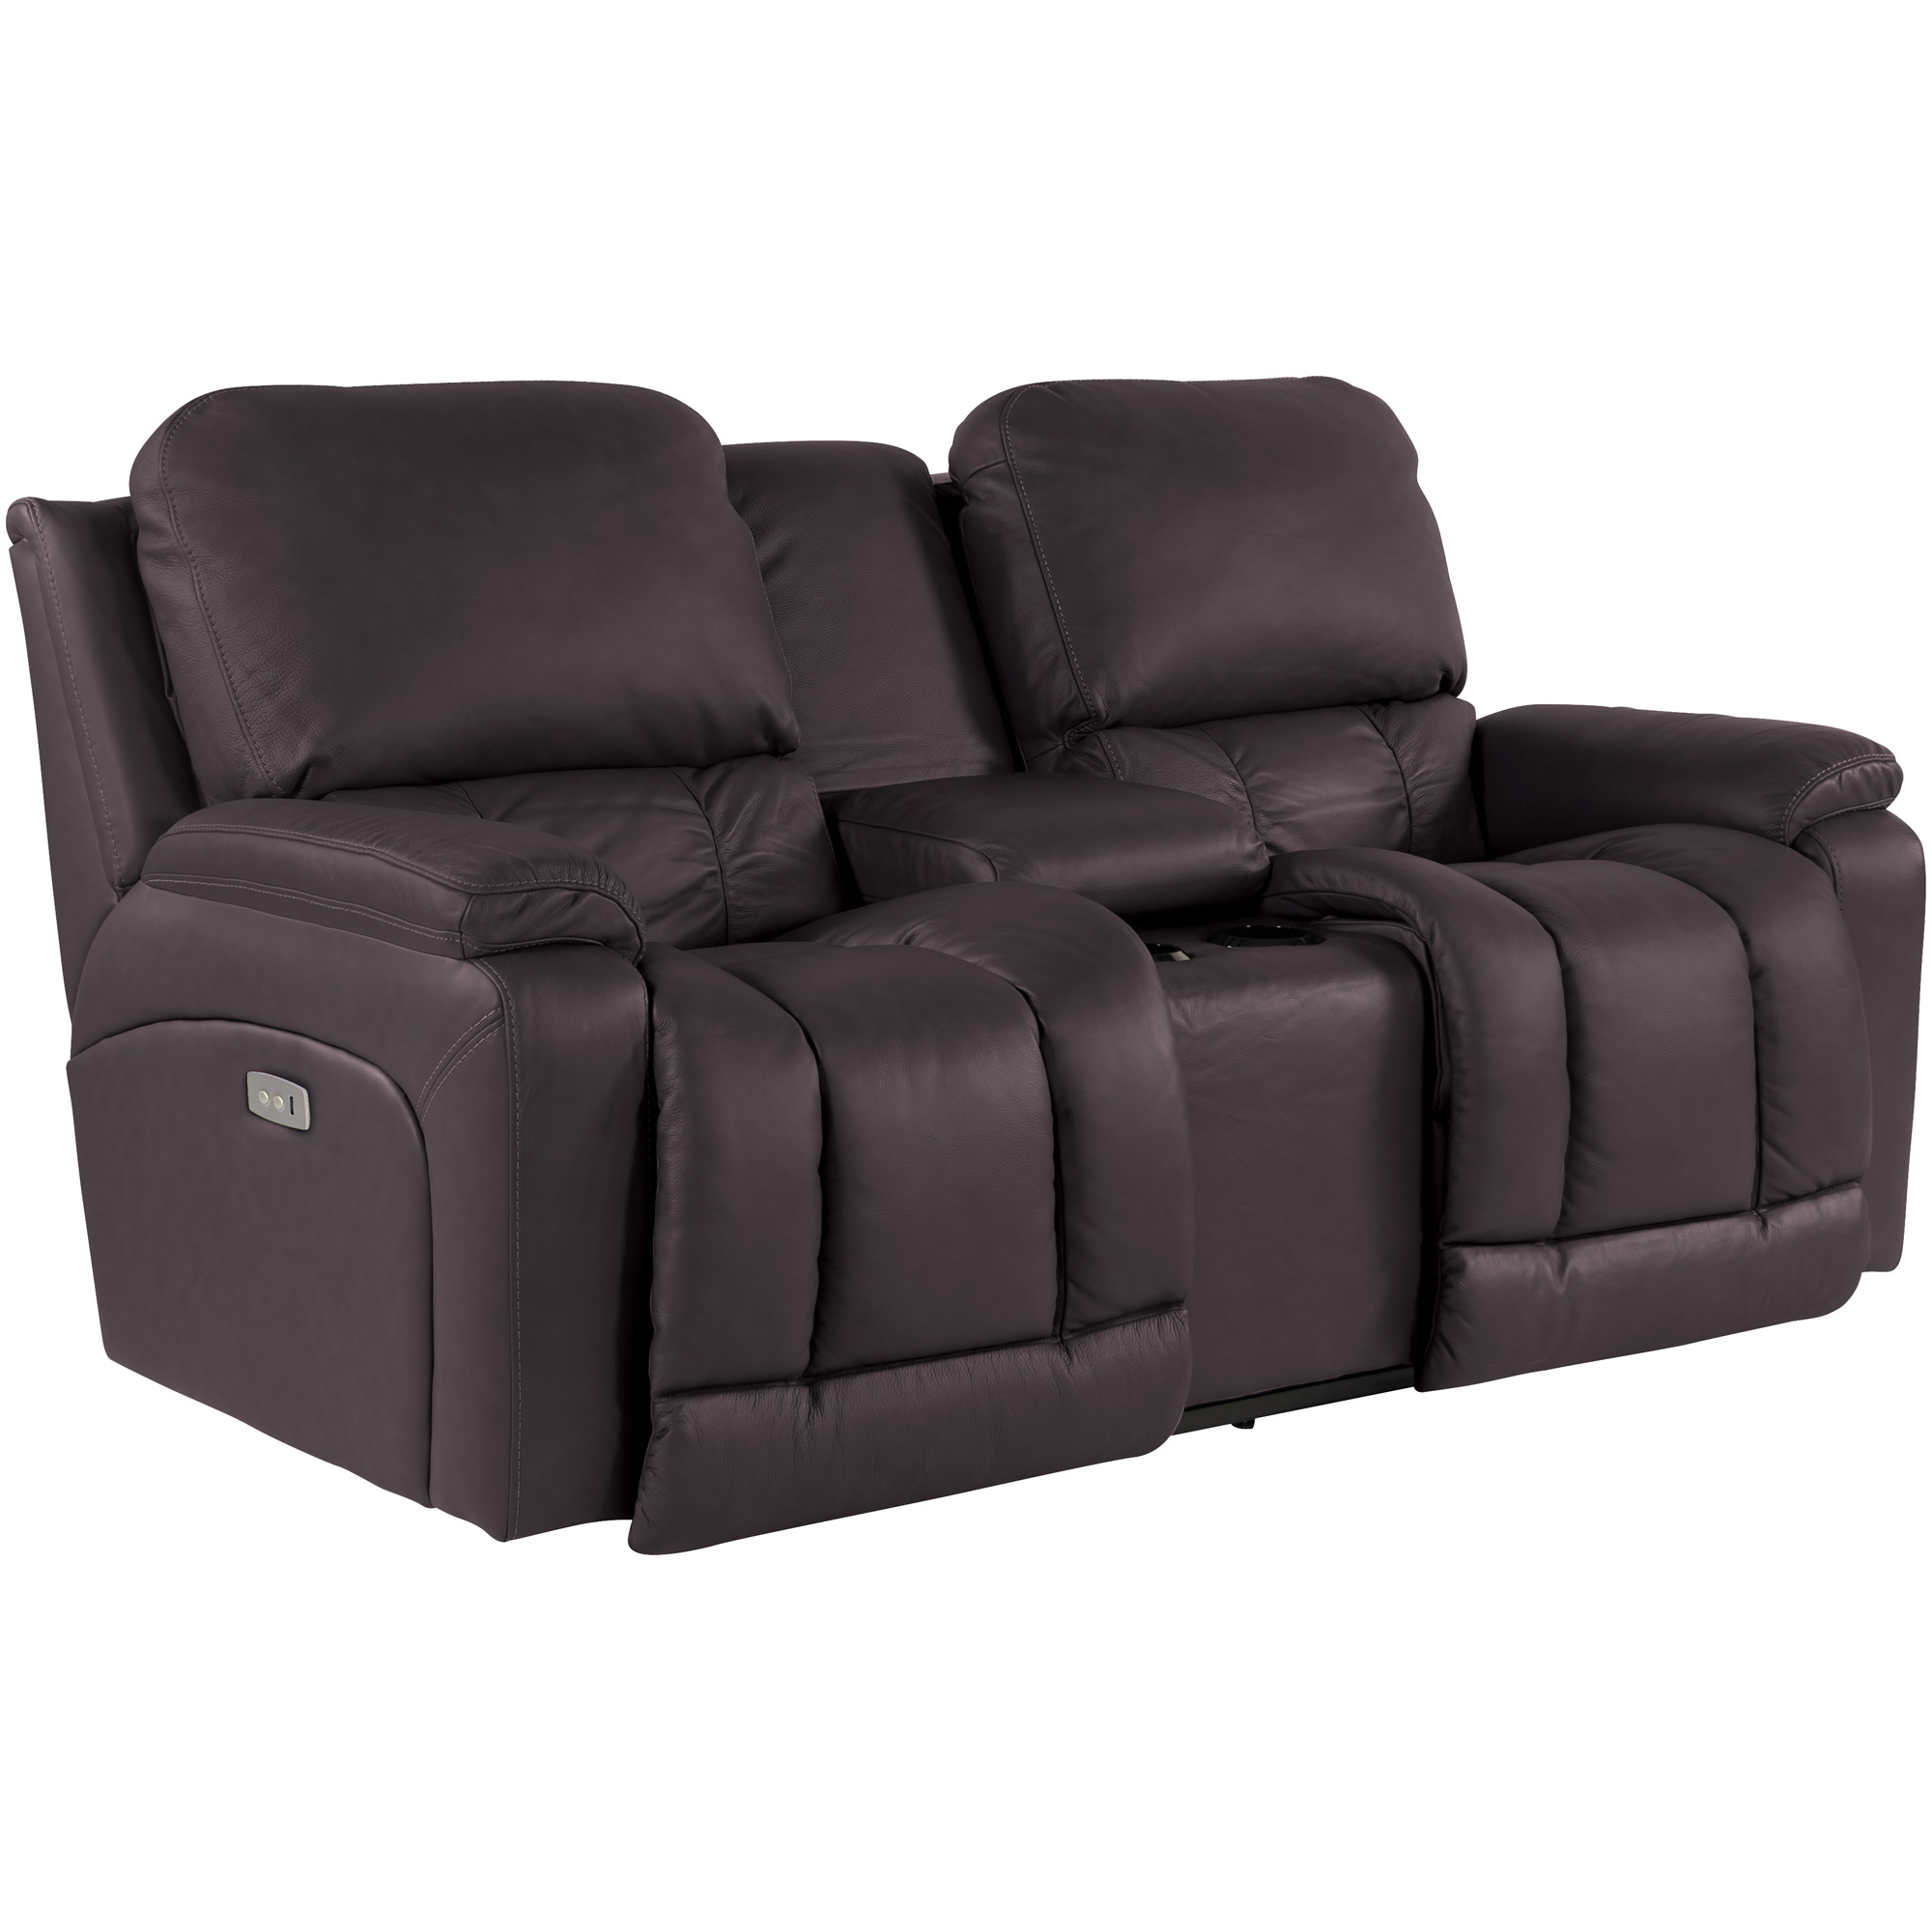 La-Z-Boy | Greyson Chocolate Power Reclining Console Loveseat Sofa